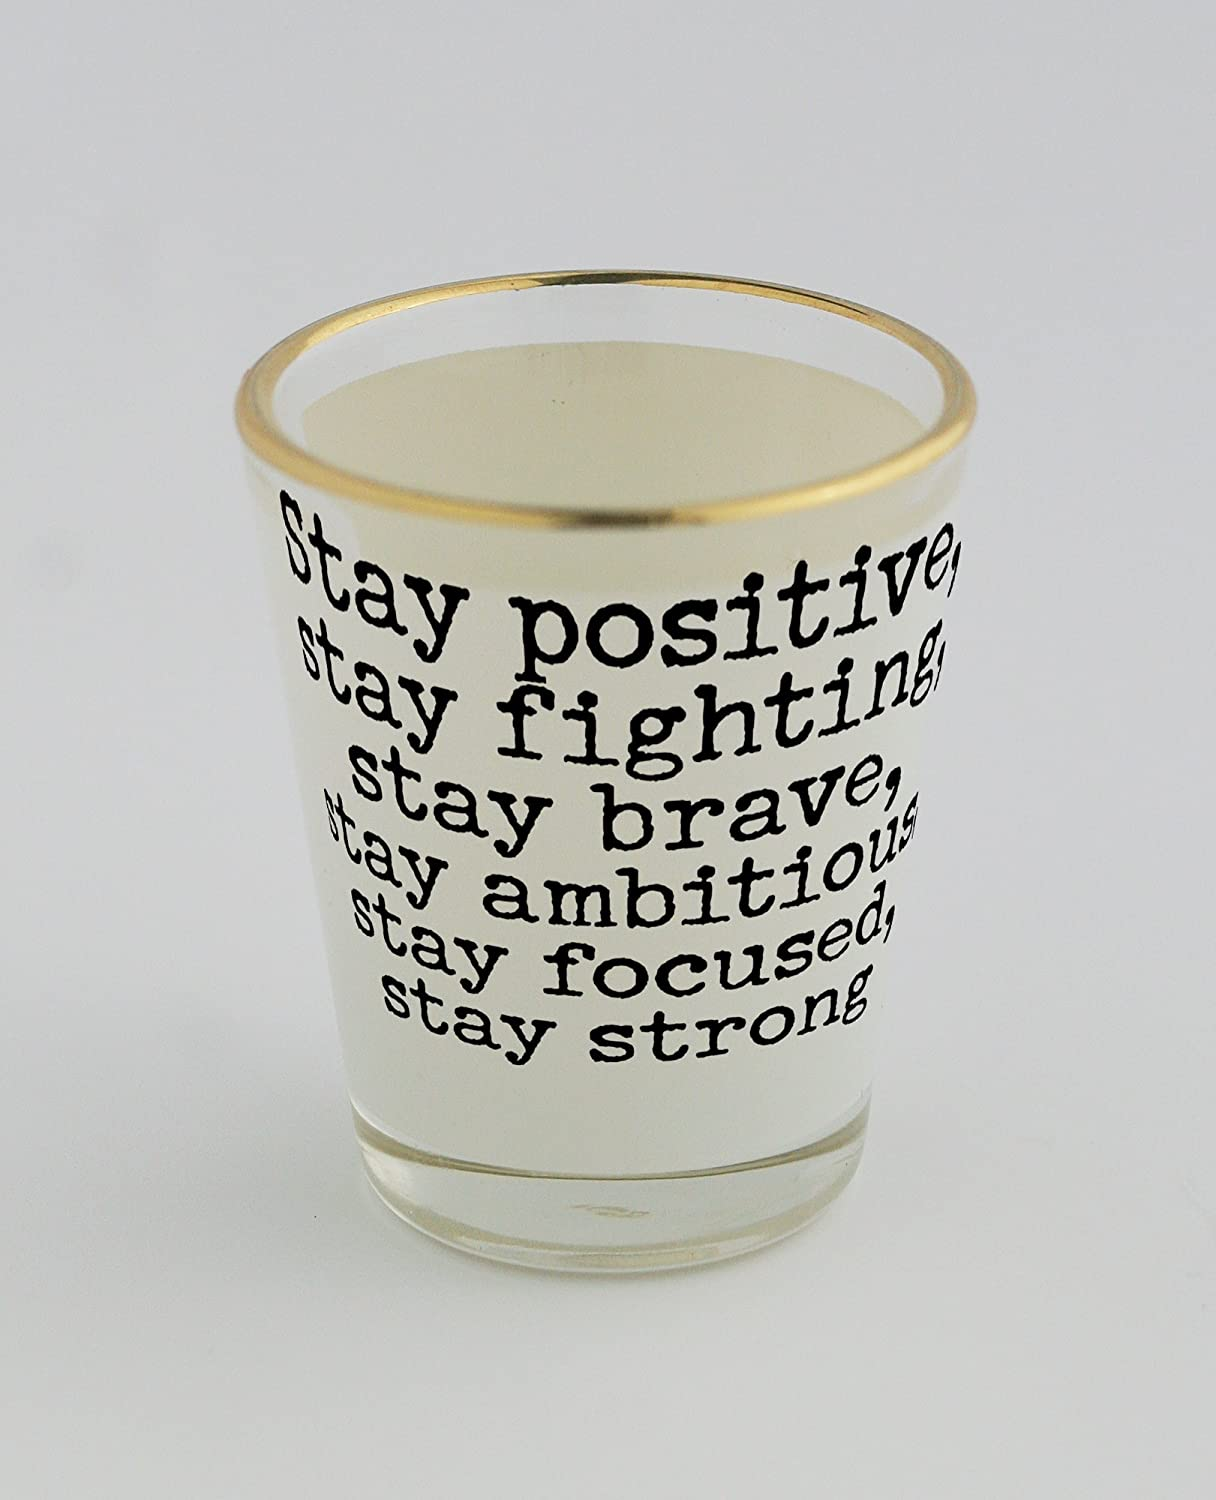 Stay Positive, Stay Fighting, Stay Brave, Stay Ambitious, Stay comfort-focused, Stay Strong Shot Glass with Golden Rim: Amazon.es: Hogar